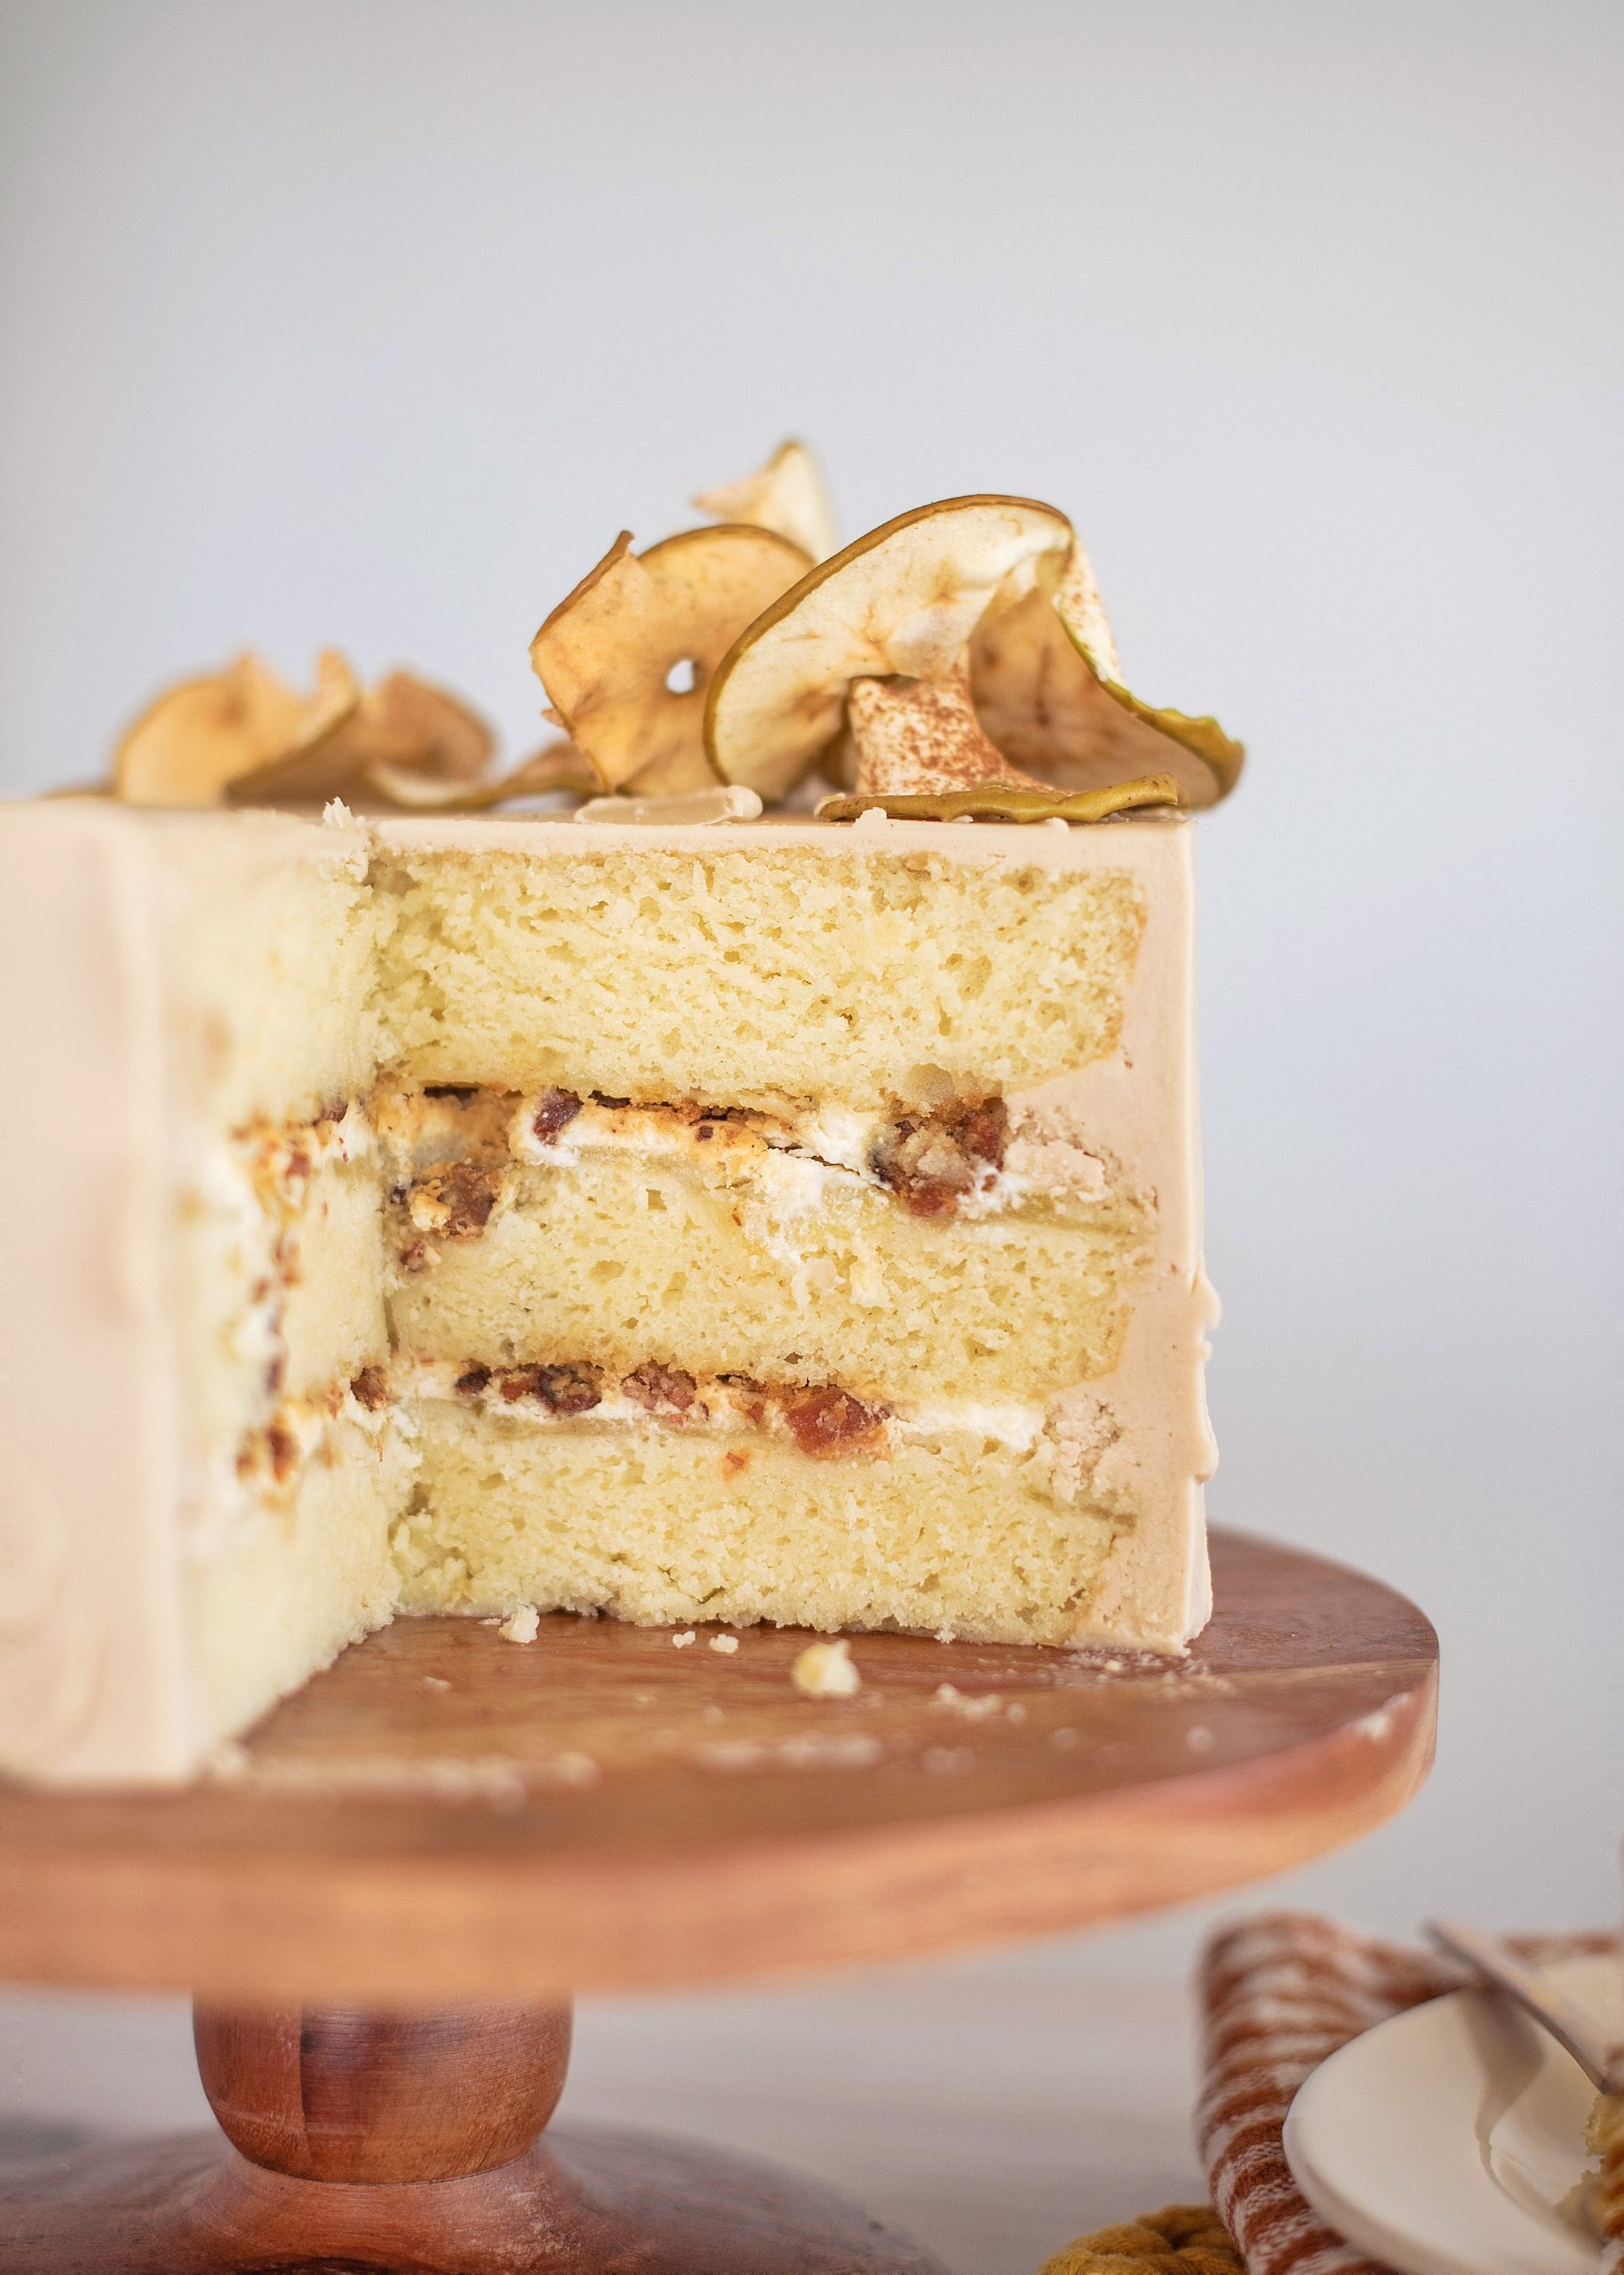 Sweet and Savory Apple Ricotta Bacon Cake with maple buttercream. The perfect pairing of sweet and savory flavors to kick off the fall season. Tender ricotta cake layers baked on tart green apples, layered with ricotta filling, candied bacon and maple buttercream. #bacon #cake #maple #maplebuttercream #candiedbacon #maplebacon #fallcakes #fallcakeflavors #fallcakerecipe #sweetandsavorydessert #bestfallcakeflavors #falldesserts #falldessert #ricottacake